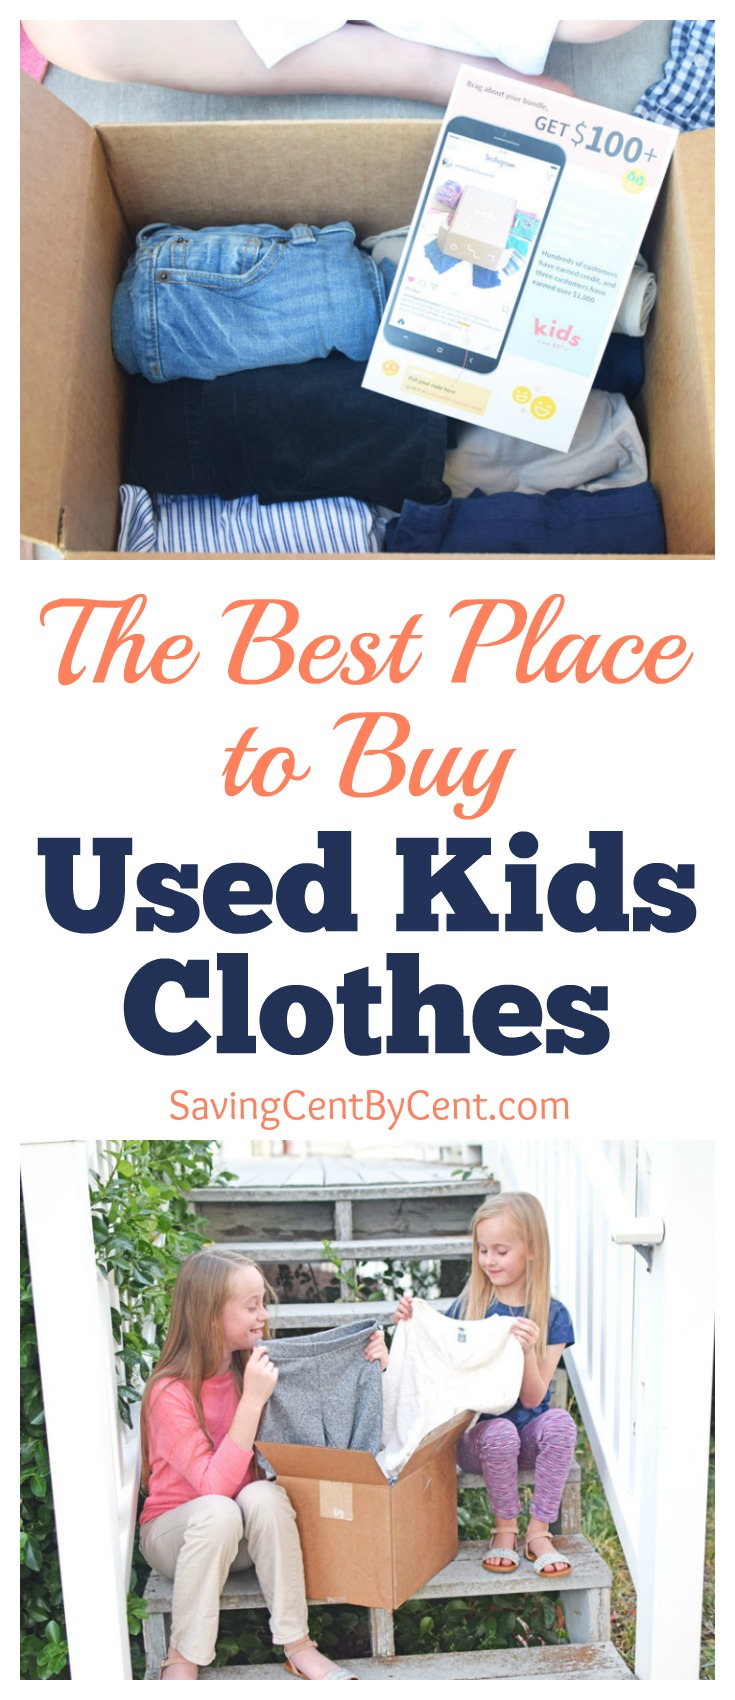 The Best Place to Buy Used Kids Clothes